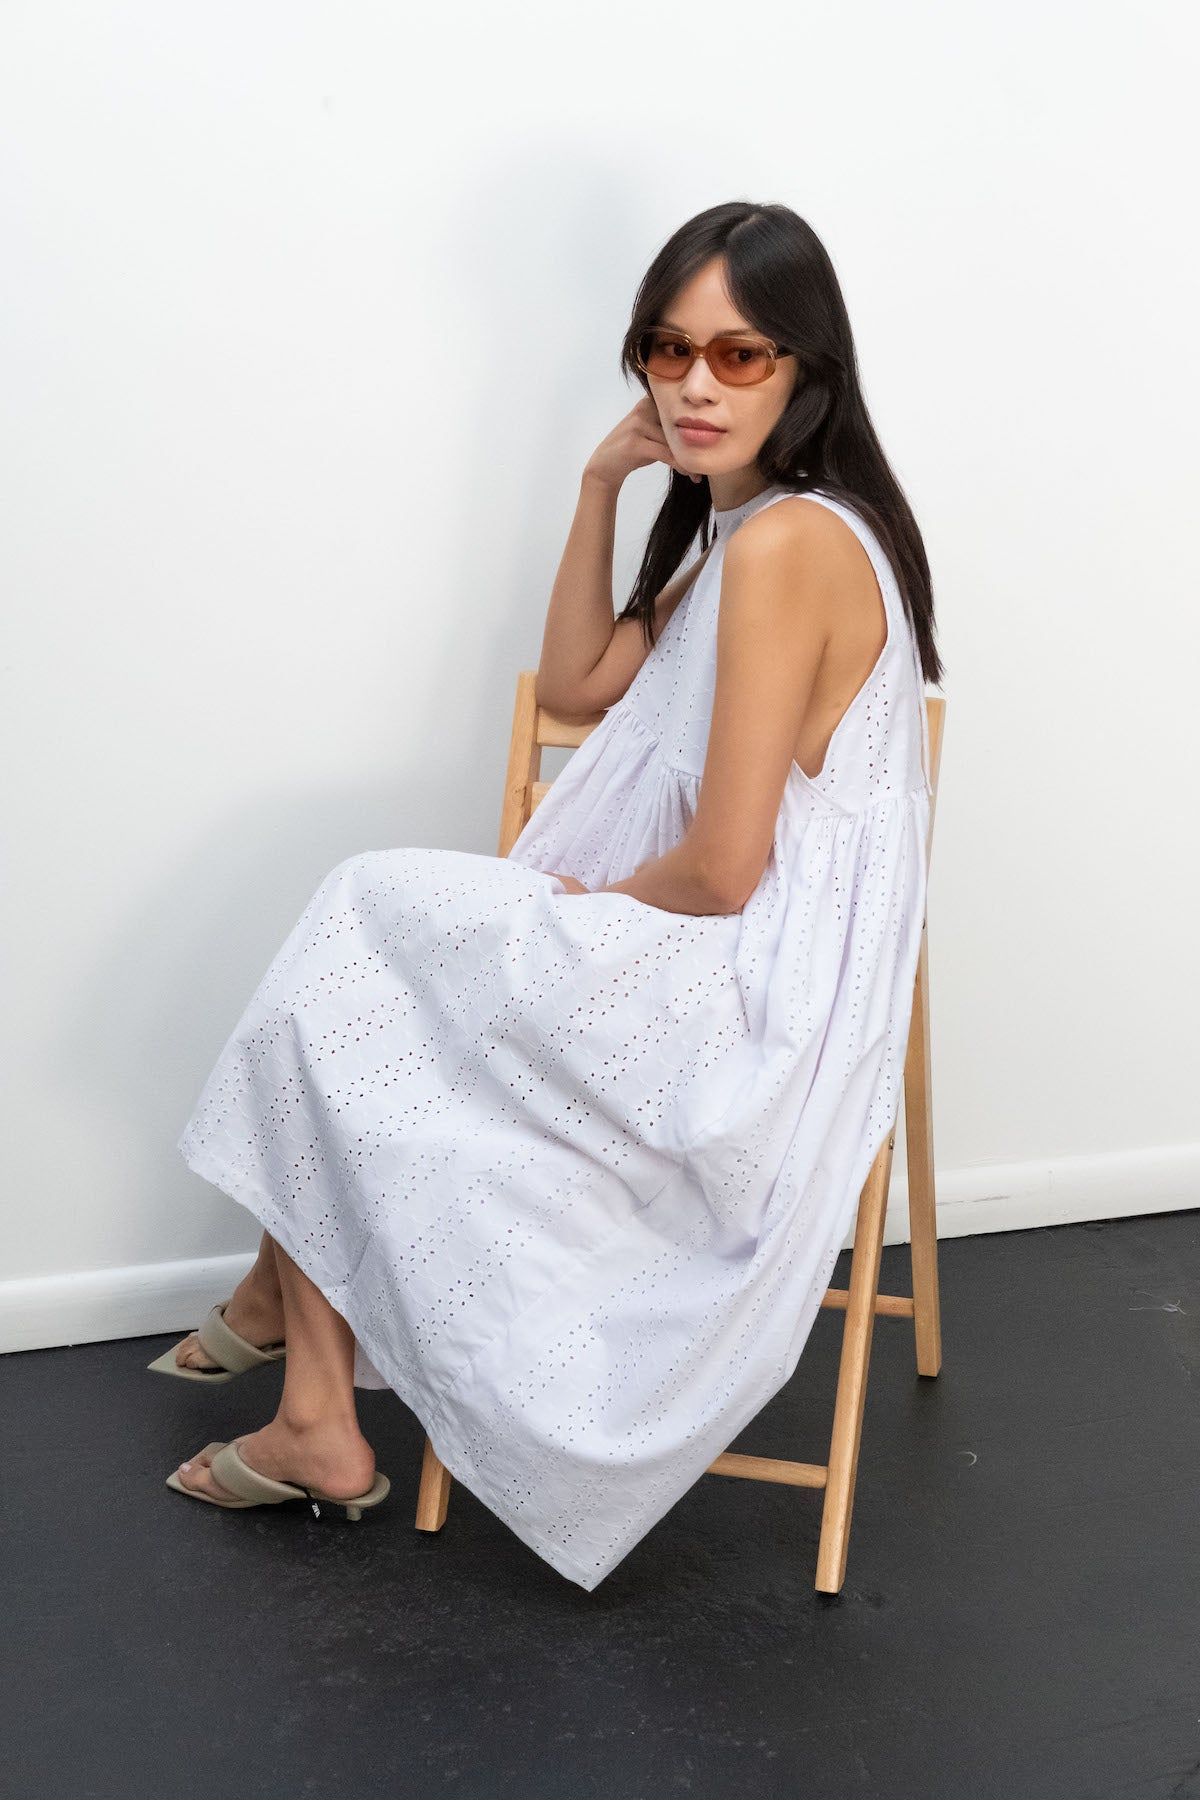 Kurt Lyle x Toit Volant Leora Dress in White Embroidered Eyelet